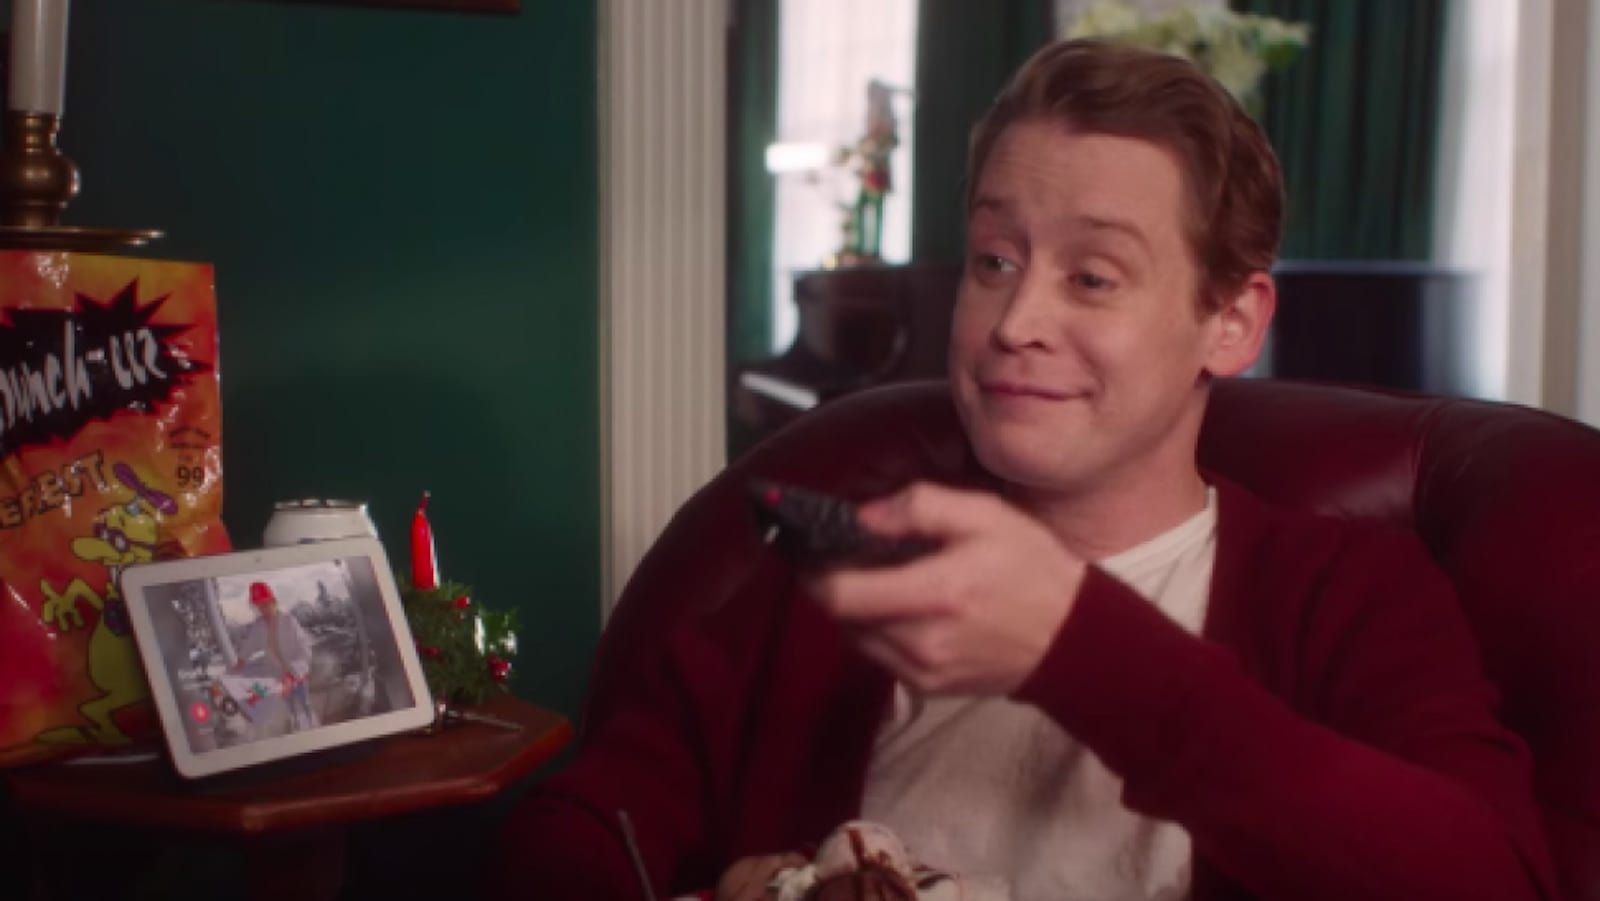 Macaulay Culkin Home Alone 2020.Here S Everything To Know About The Home Alone Remake